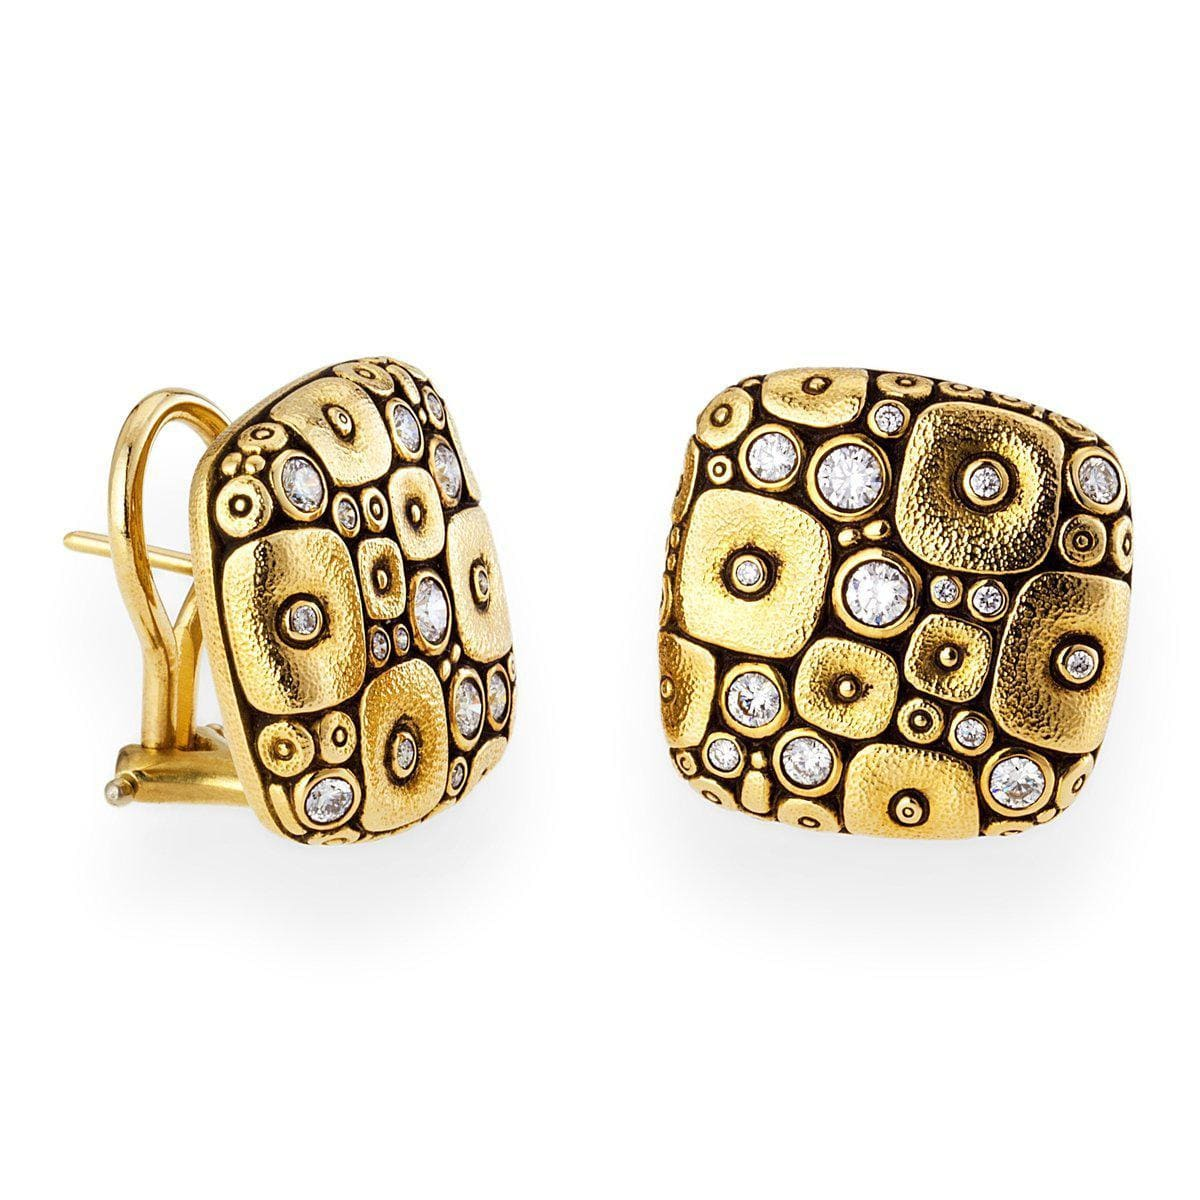 18K Soft Mosaic Diamond Earrings - E-115D-Alex Sepkus-Renee Taylor Gallery